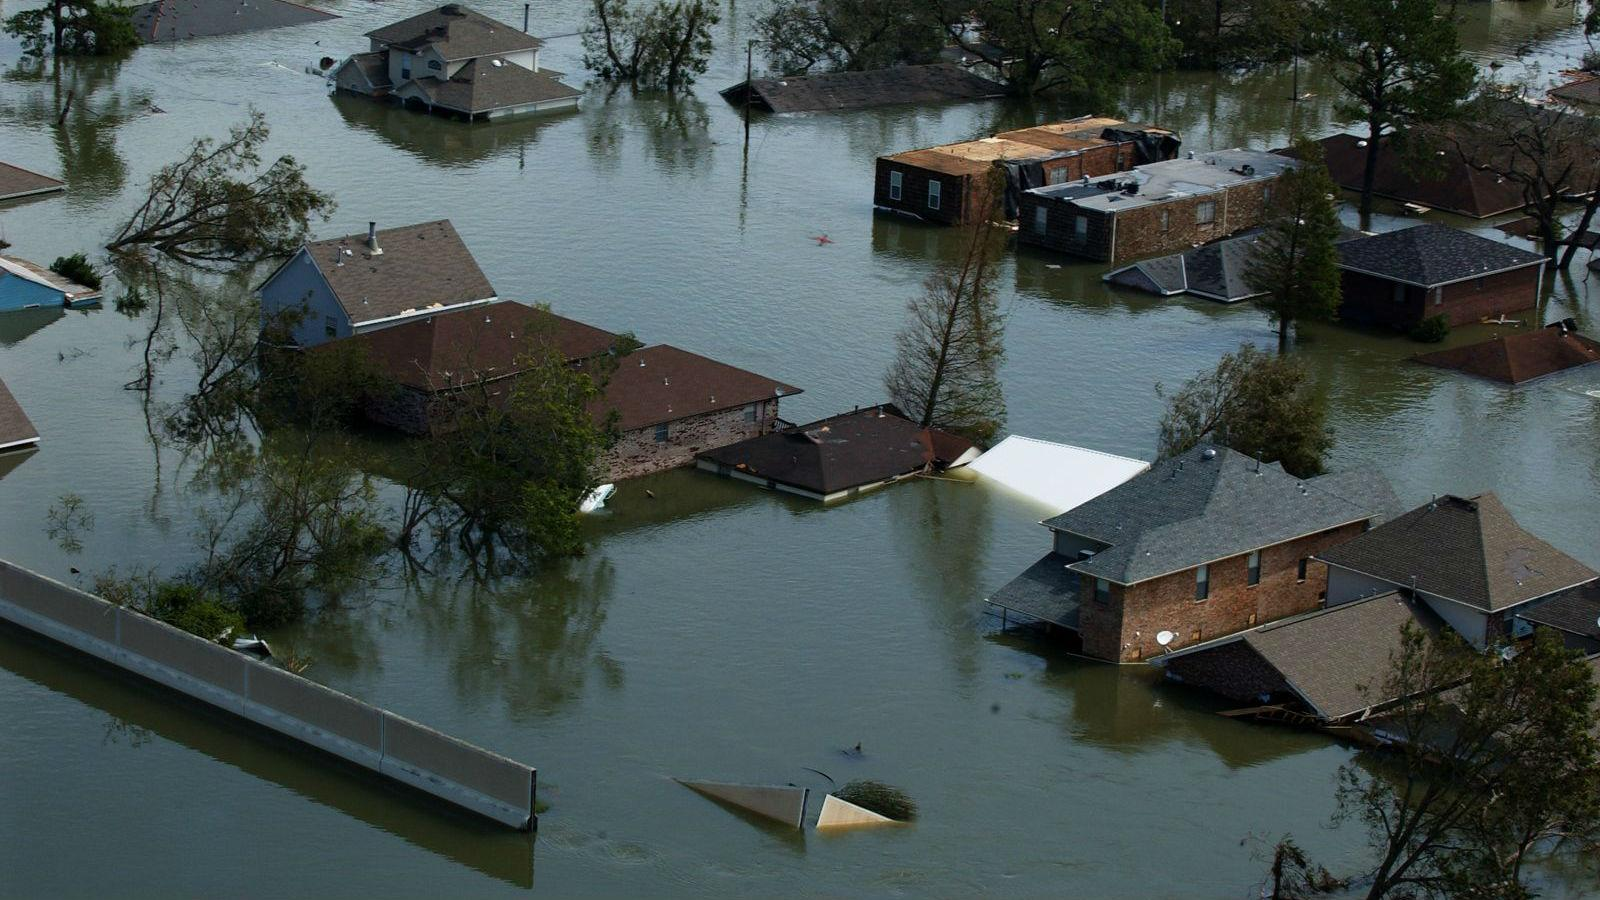 News Article About A Natural Disaster